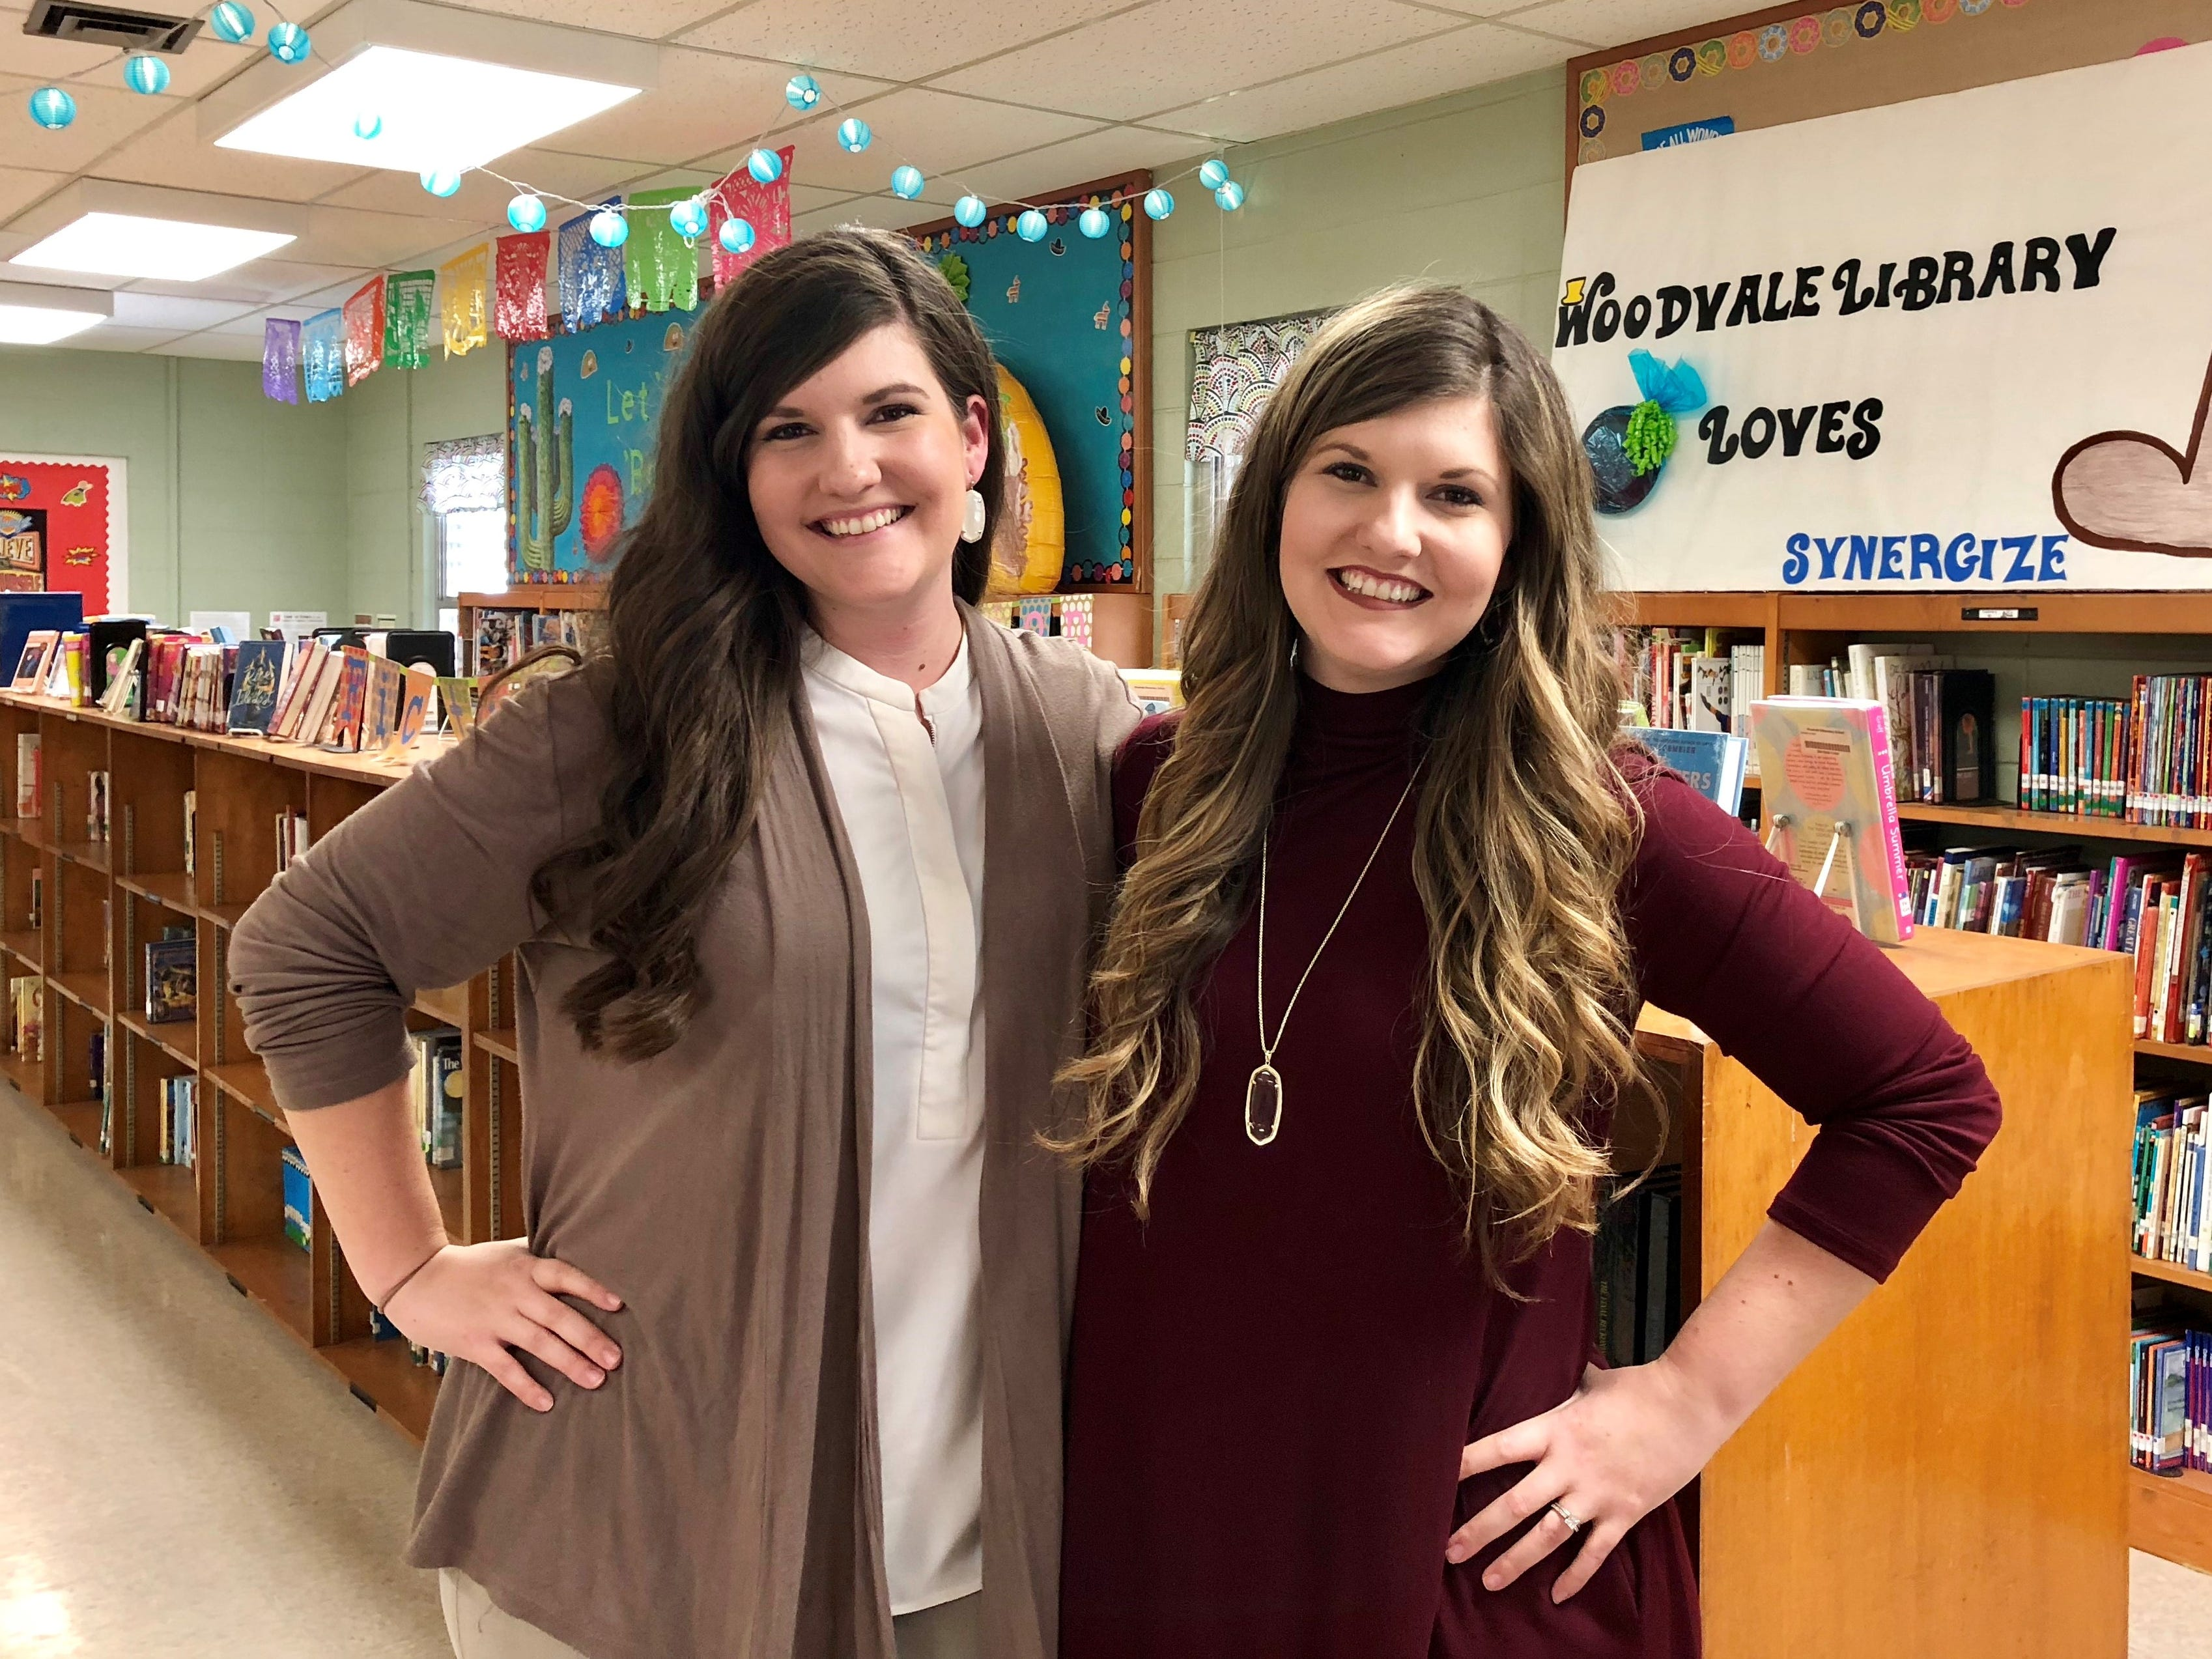 Twin sisters Megan Mercado and Taylor Wallace teach gifted at Woodvale Elementary, their alma mater.